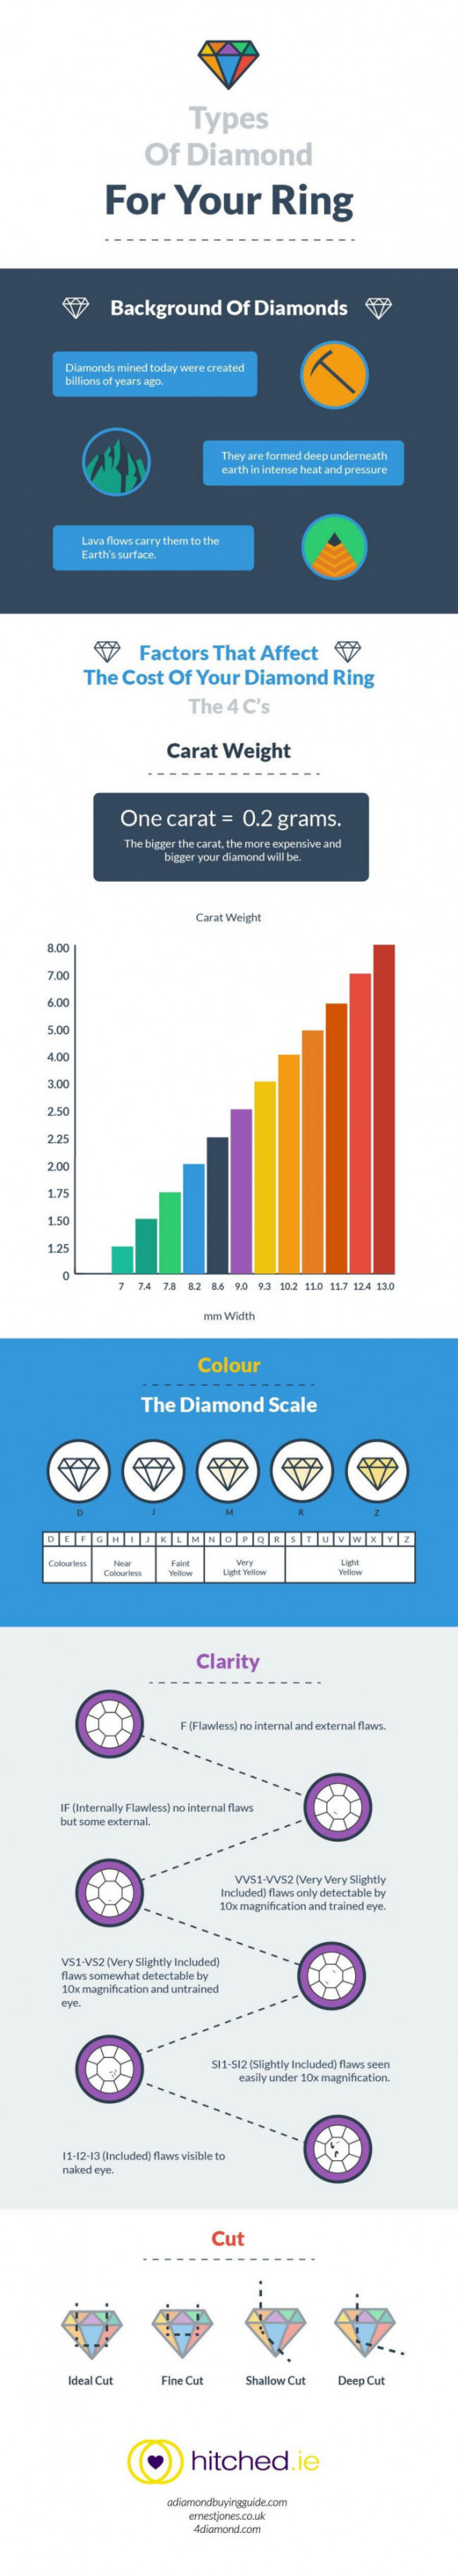 Types Of Diamond For Your Ring